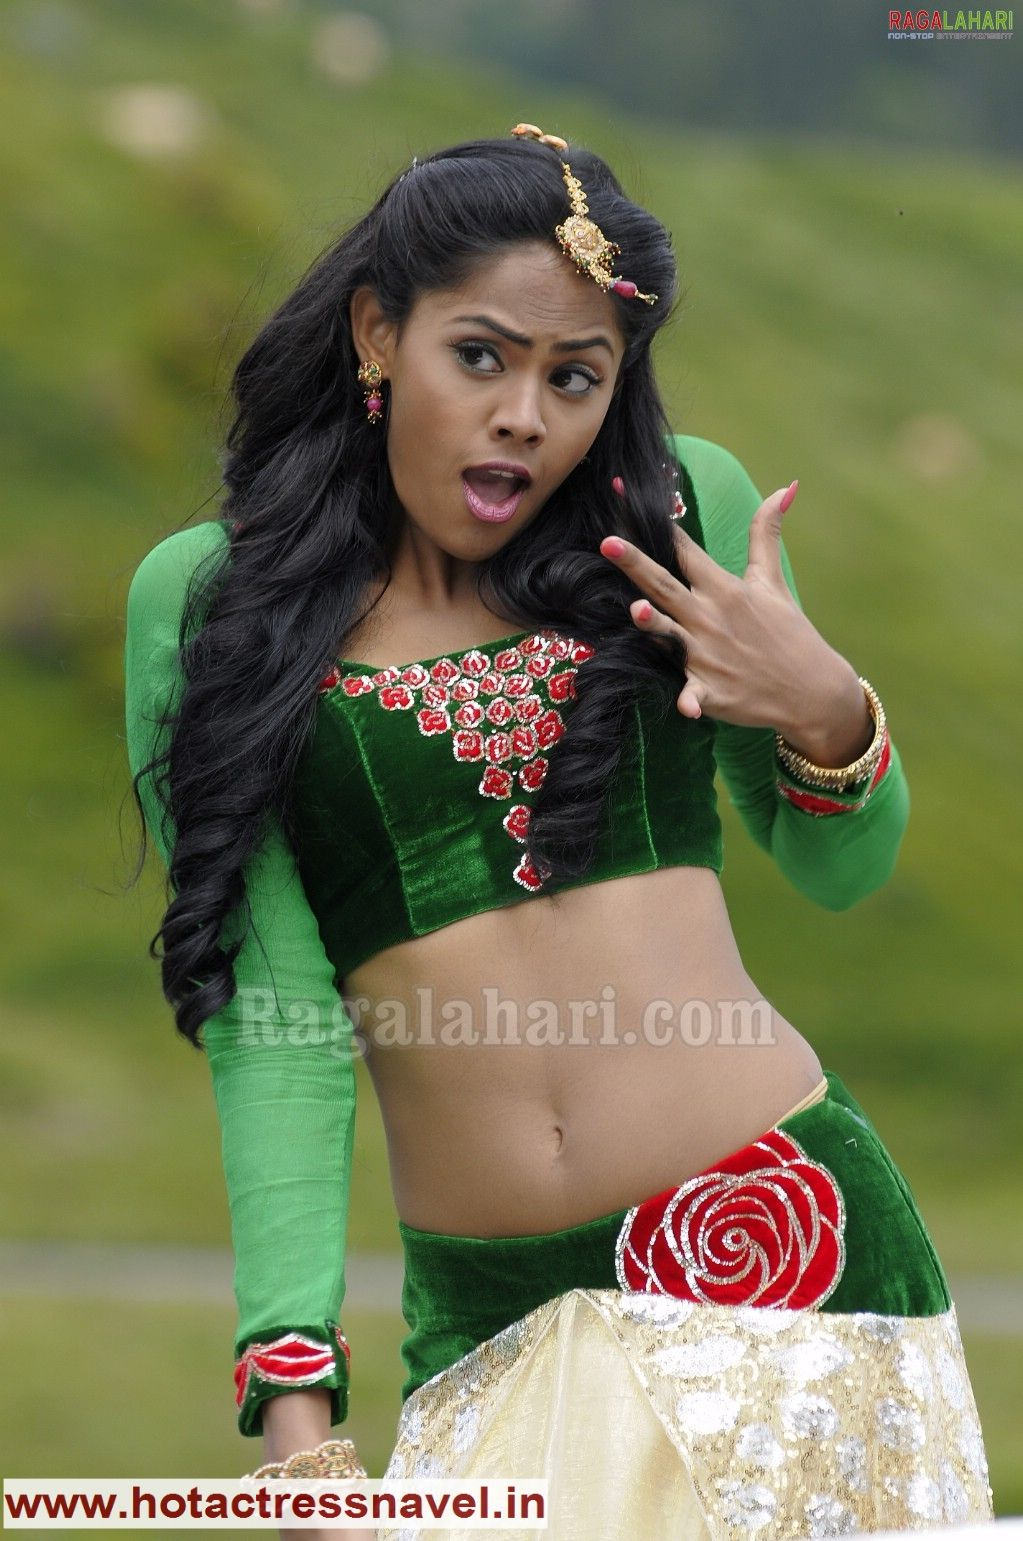 www.hotactressnavel.in - Navel, Cleavage, Thighs, Legs, Sari, Saree ... for Malayalam Actress Karthika Navel In Black Cat  181pct